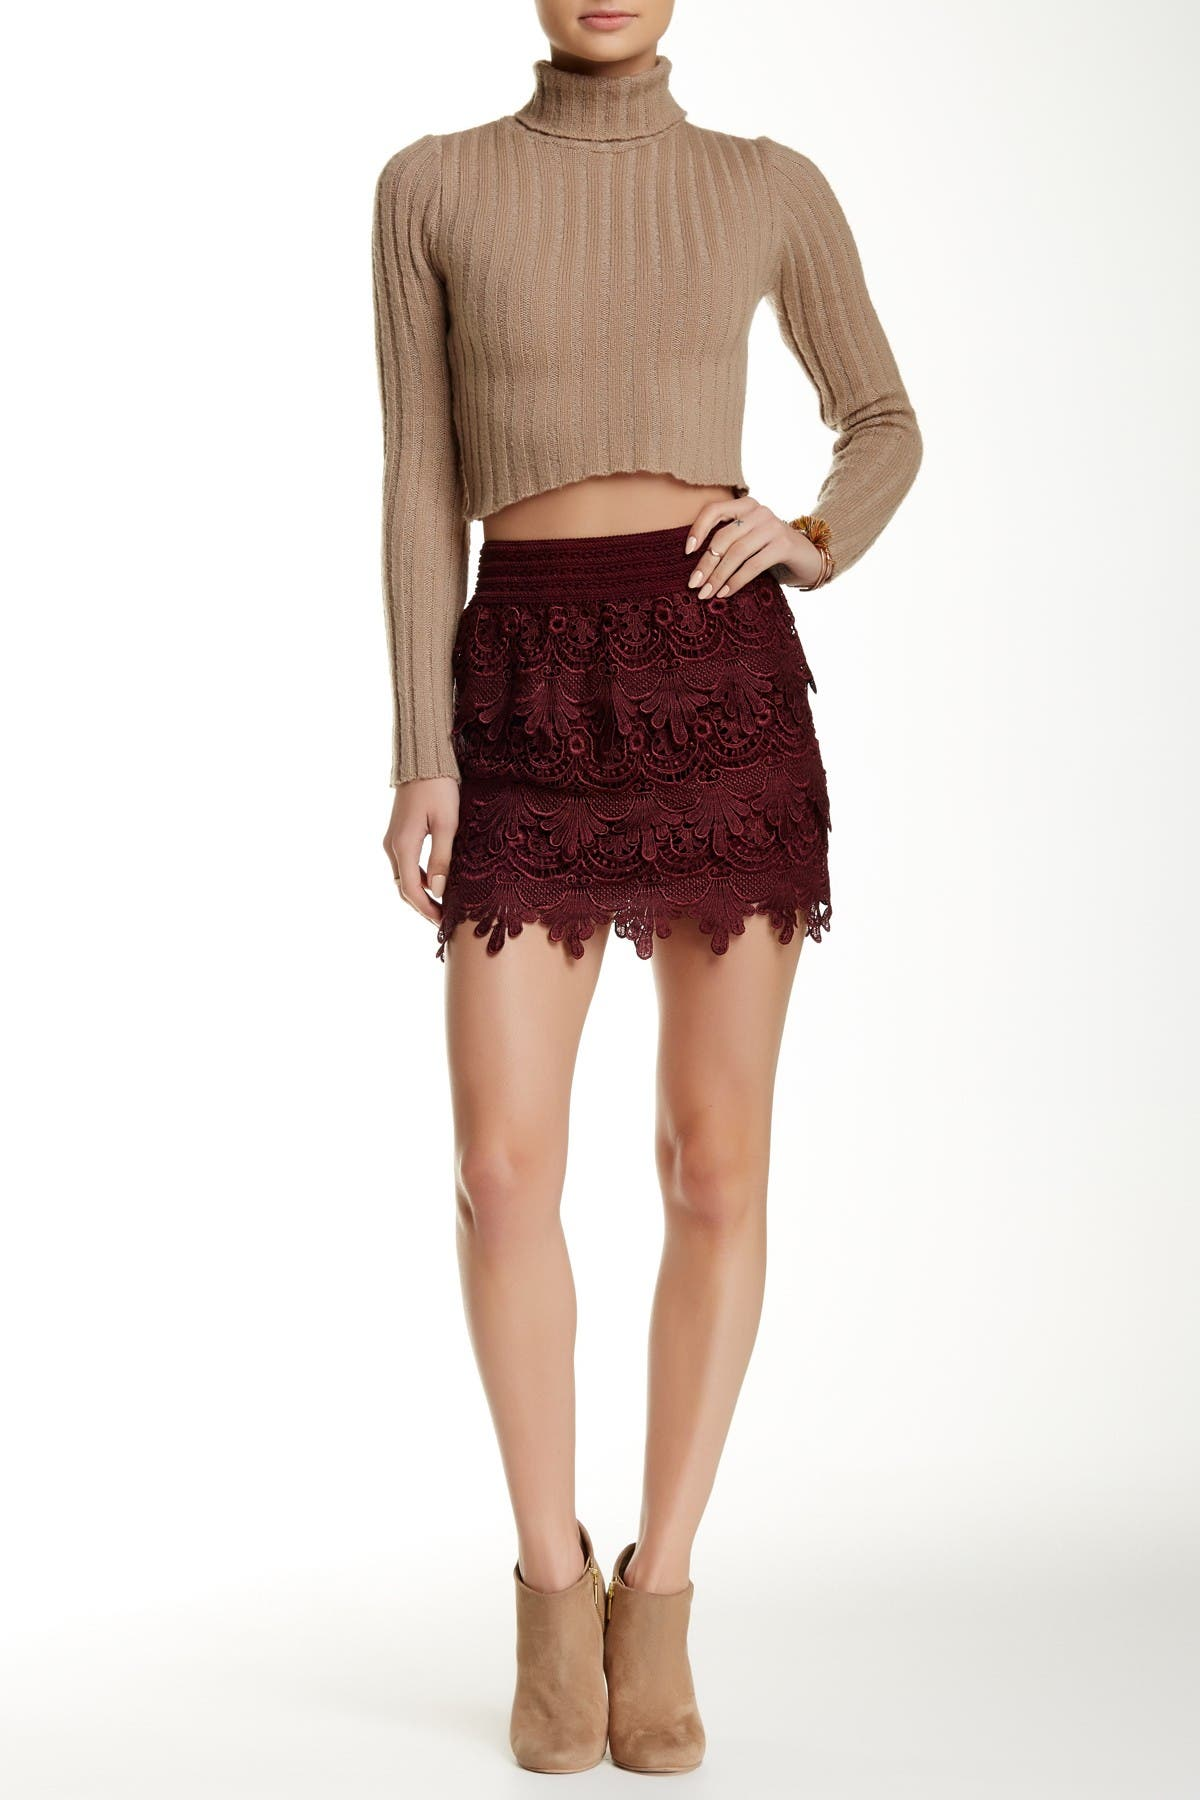 Image of Blu Pepper Tiered Lace Skirt